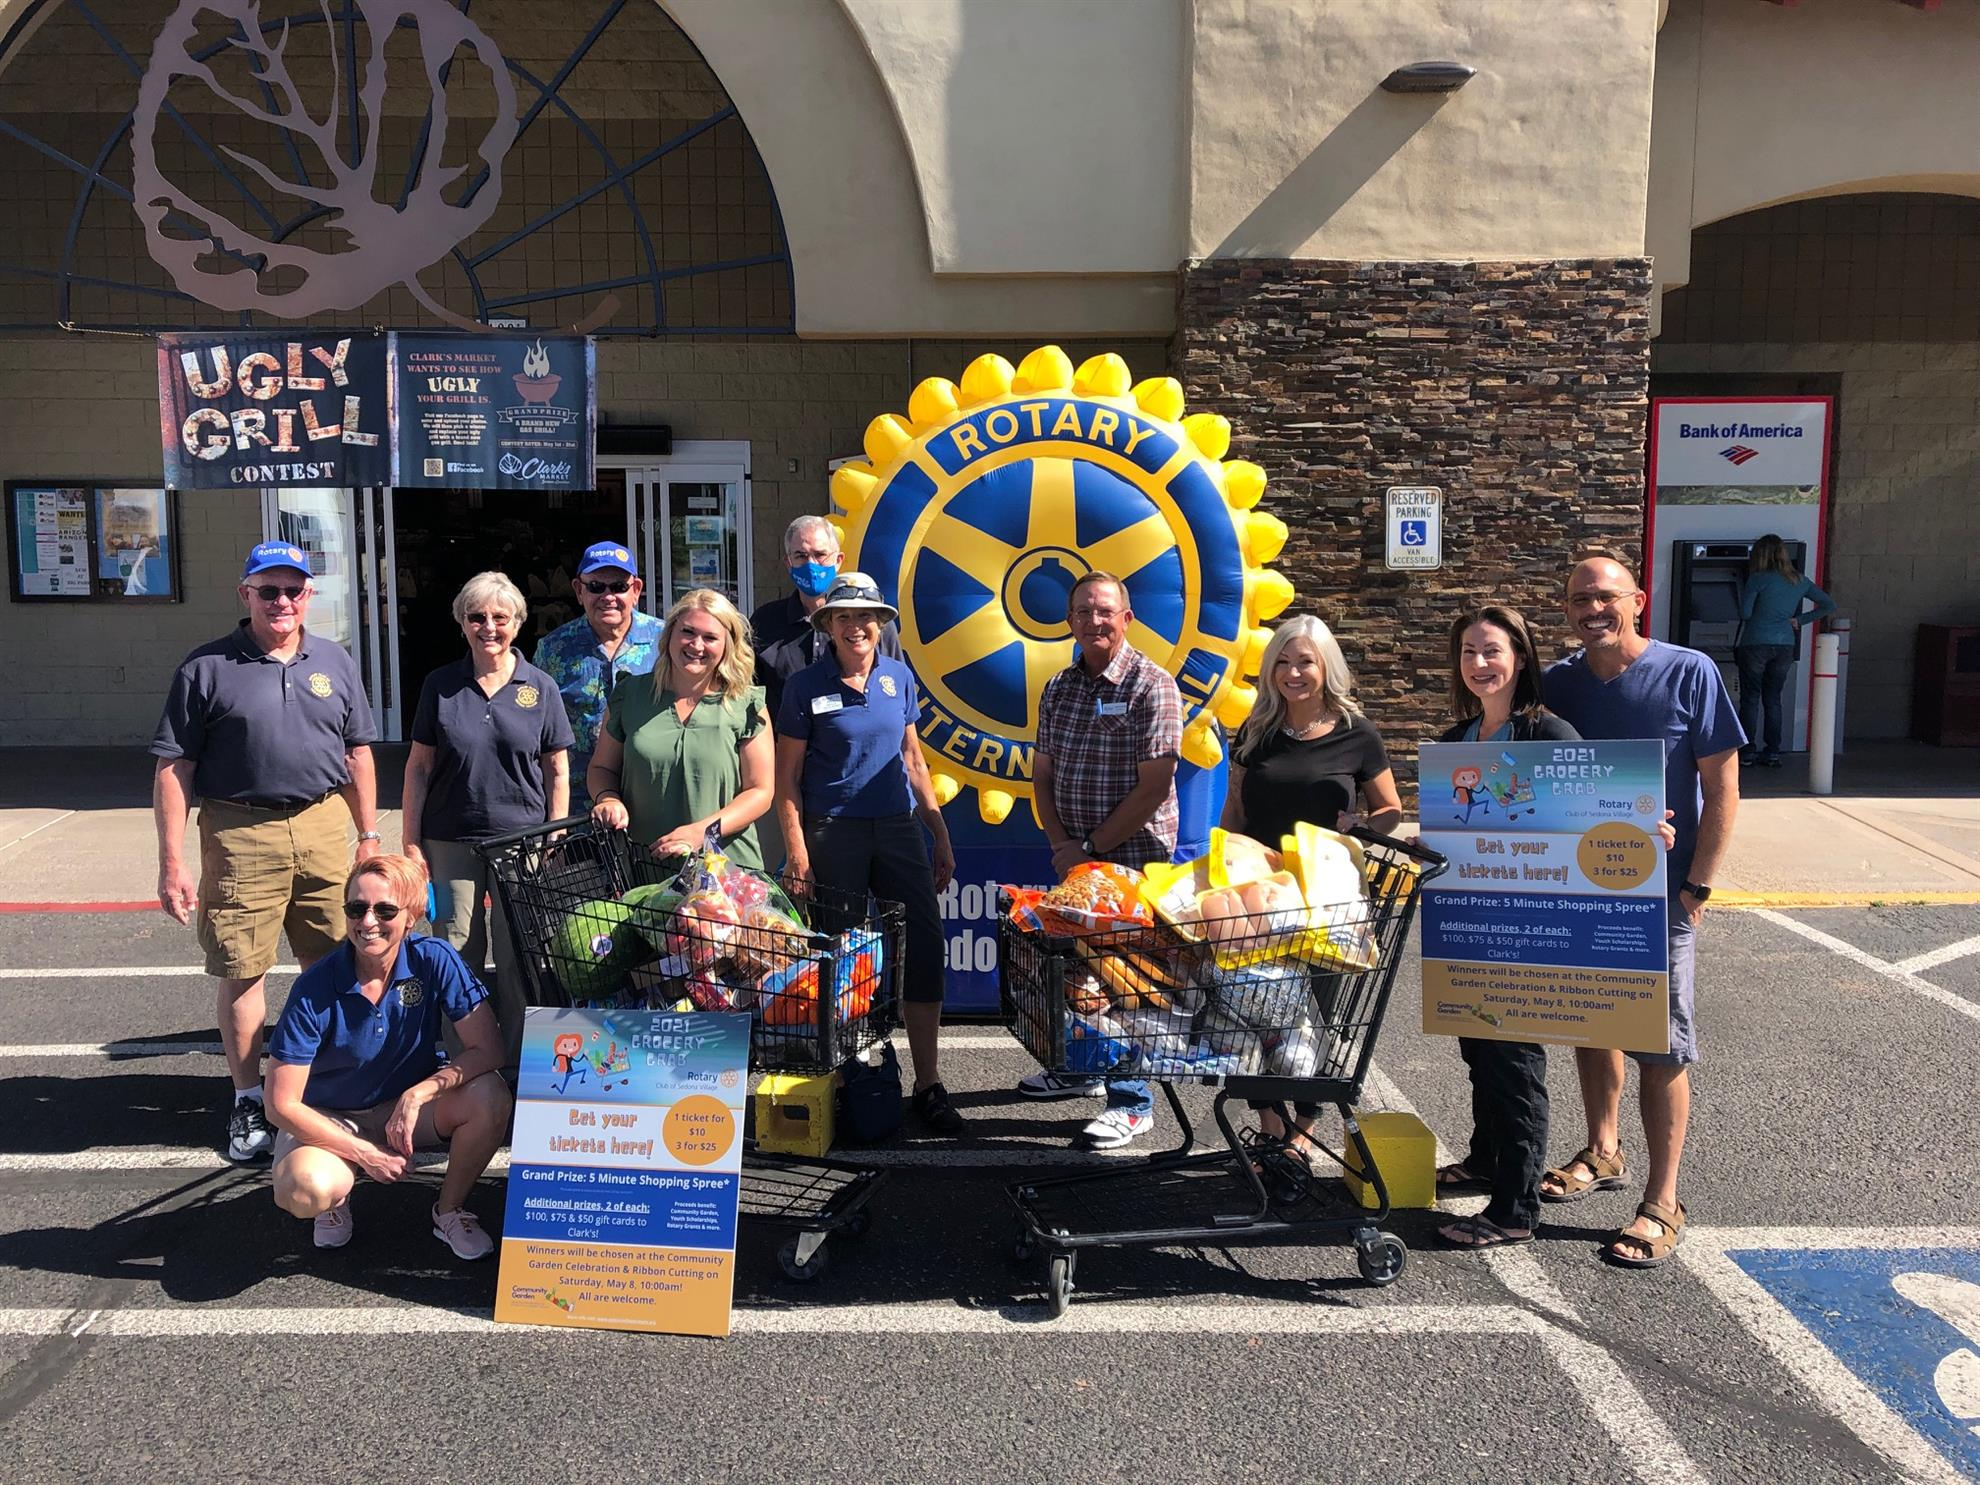 Representatives from Shelter with their carts and Rotary Club members